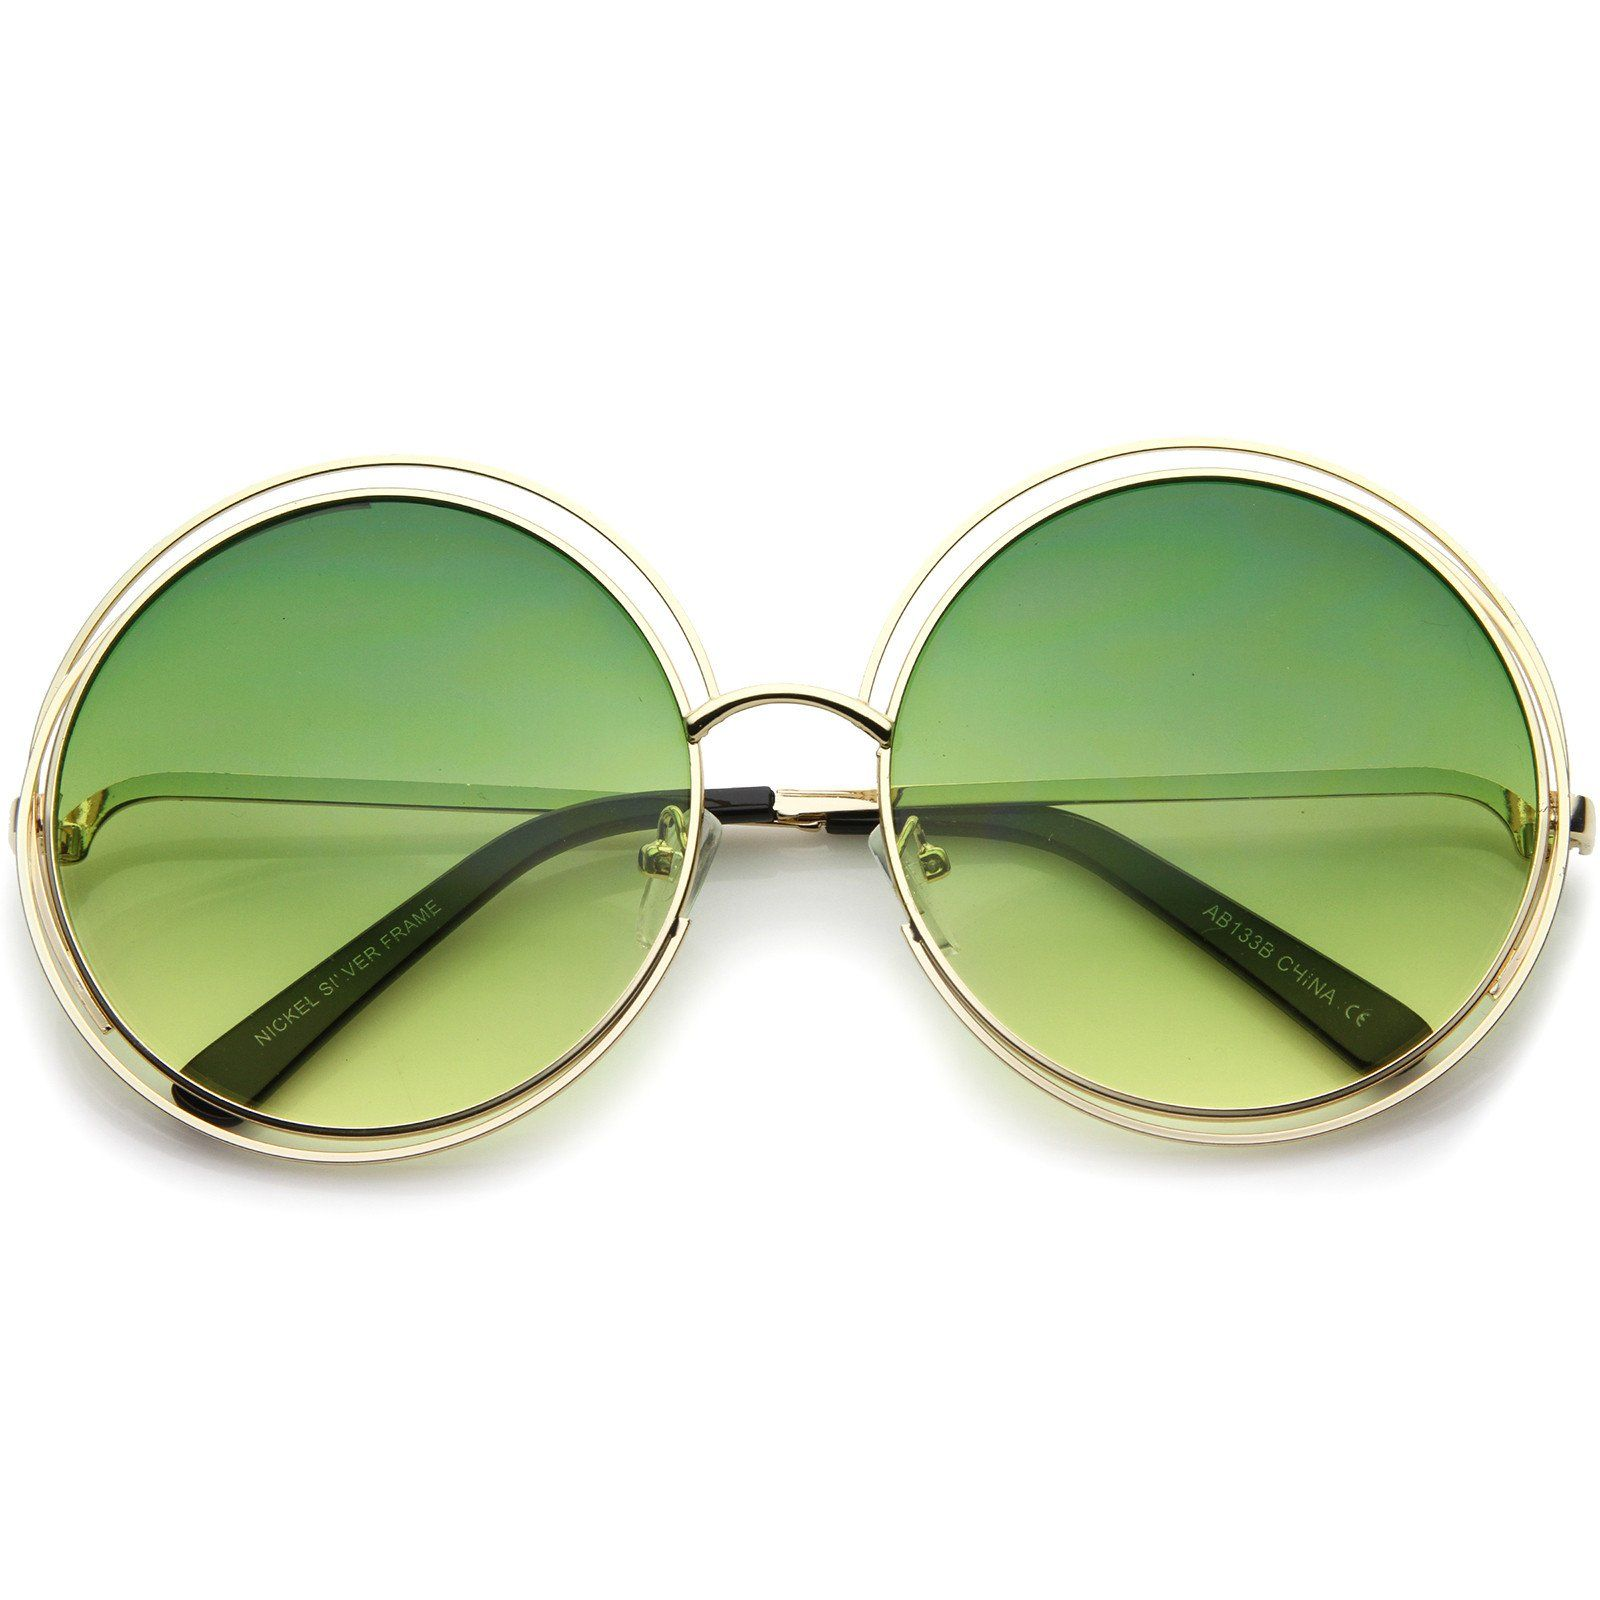 1619e25b77 Oversize Wire Frame Gradient Two-Tone Color Lens Round Sunglasses 61mm